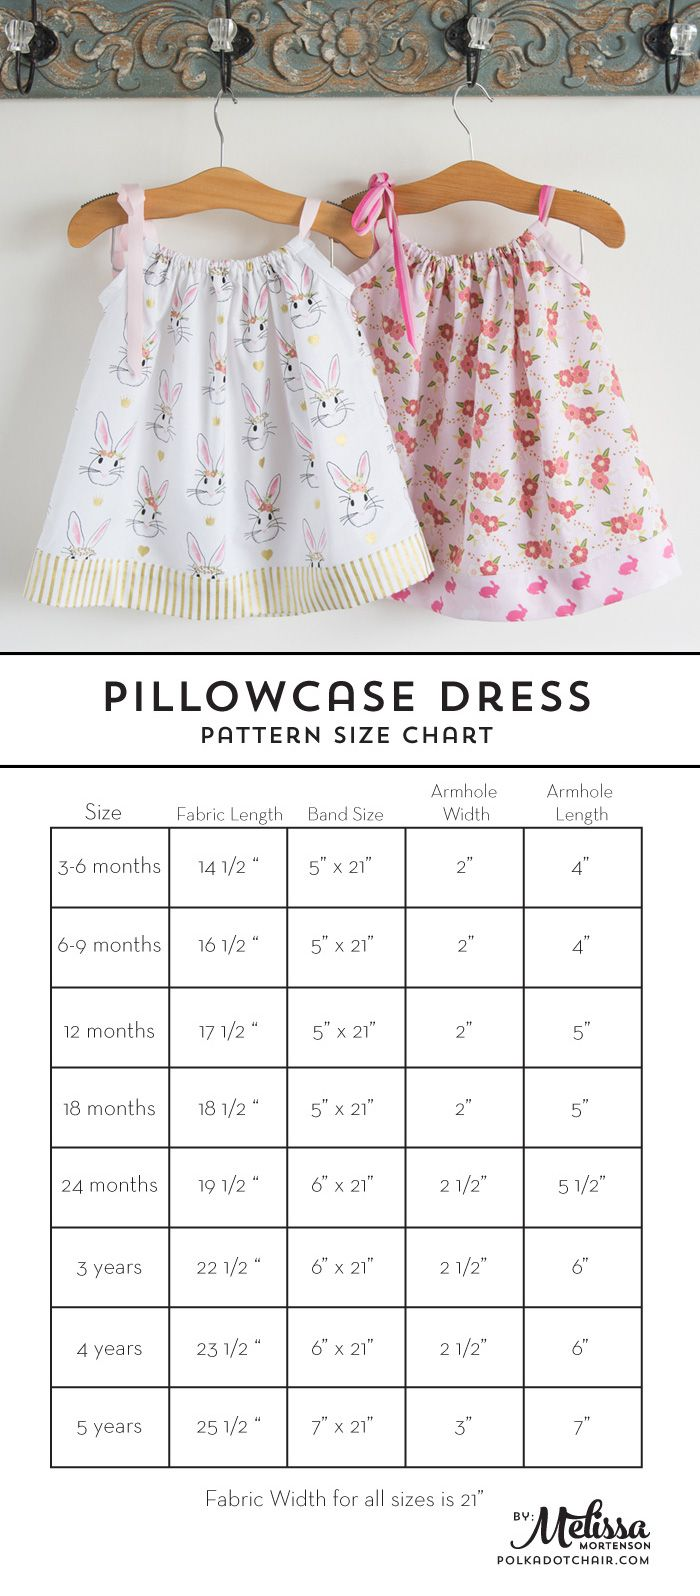 Learn how to sew a pillow case dress with this Pillowcase Dress Tutorial. Includes full